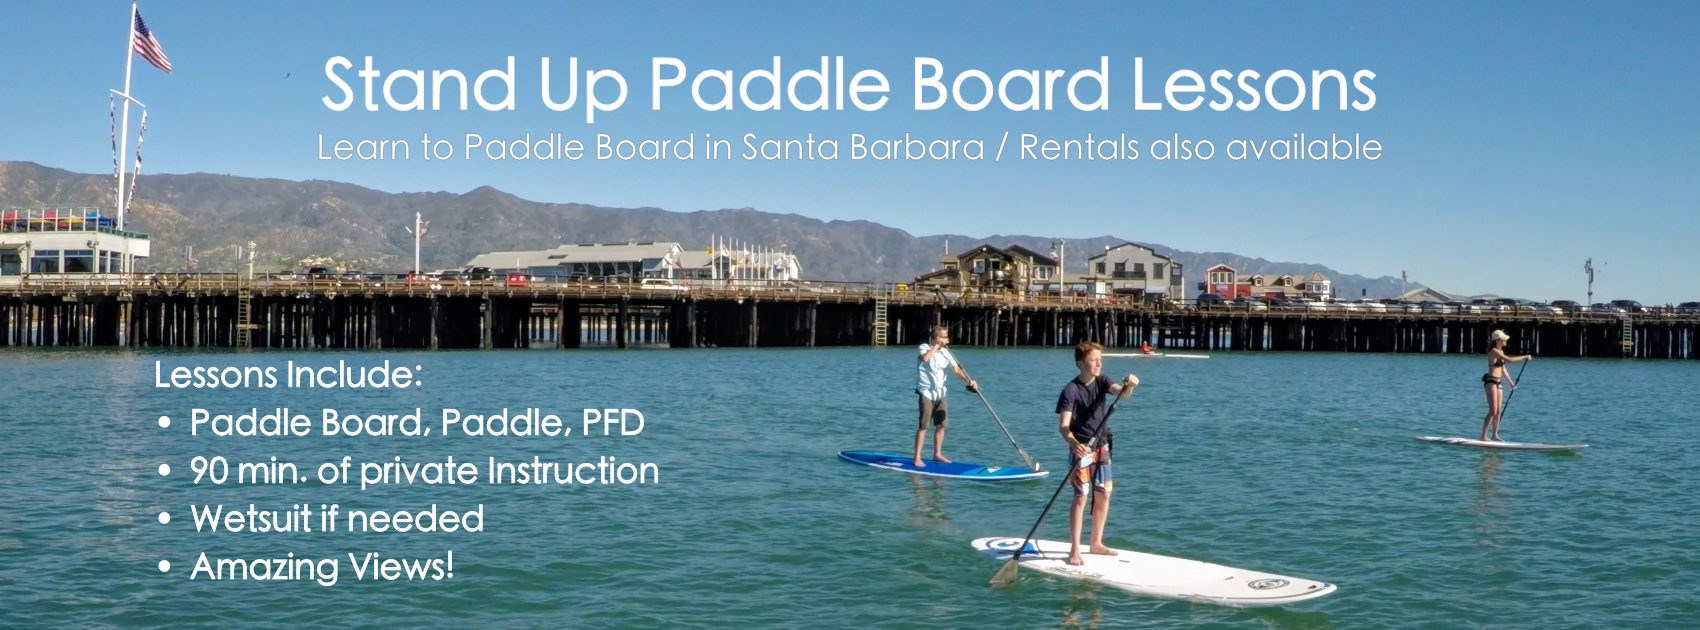 paddle board lesson